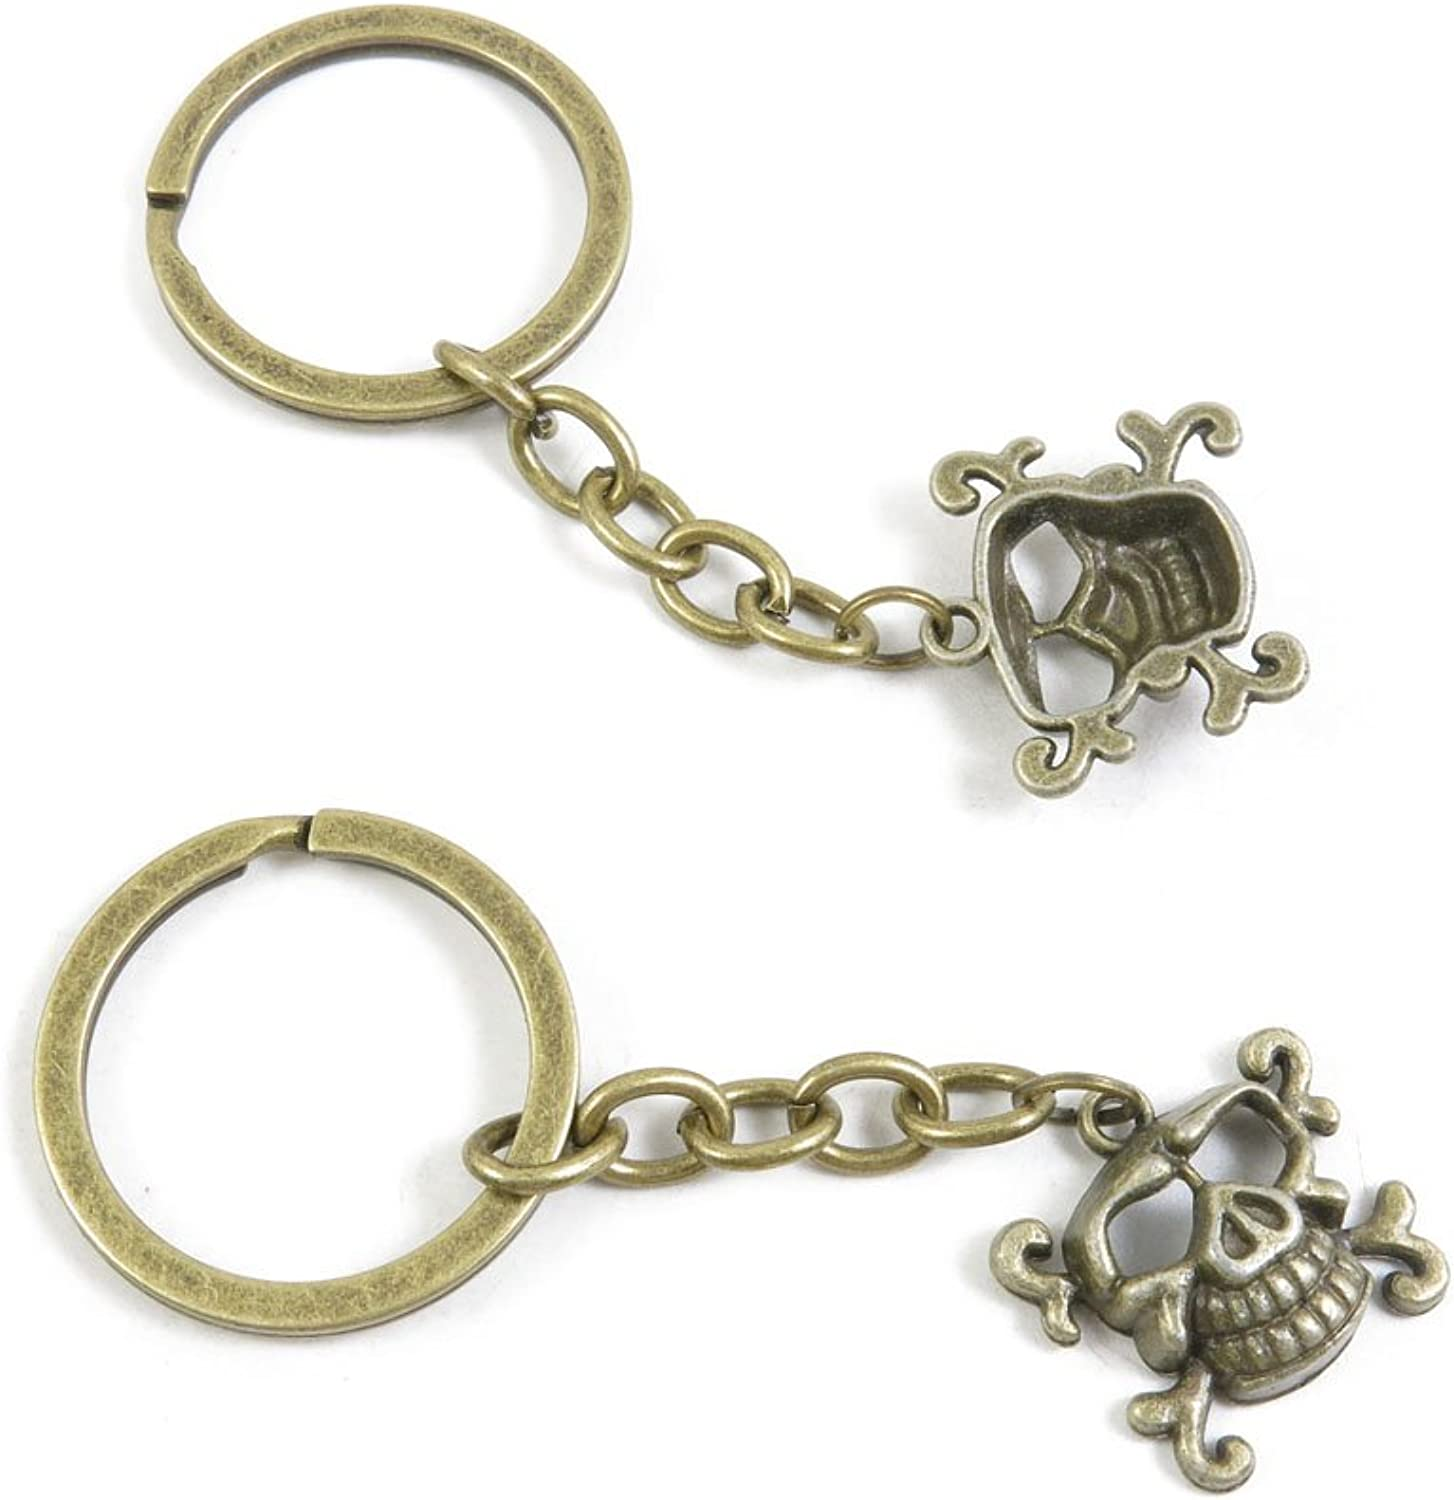 160 Pieces Fashion Jewelry Keyring Keychain Door Car Key Tag Ring Chain Supplier Supply Wholesale Bulk Lots B2SF3 Pig Skull Head